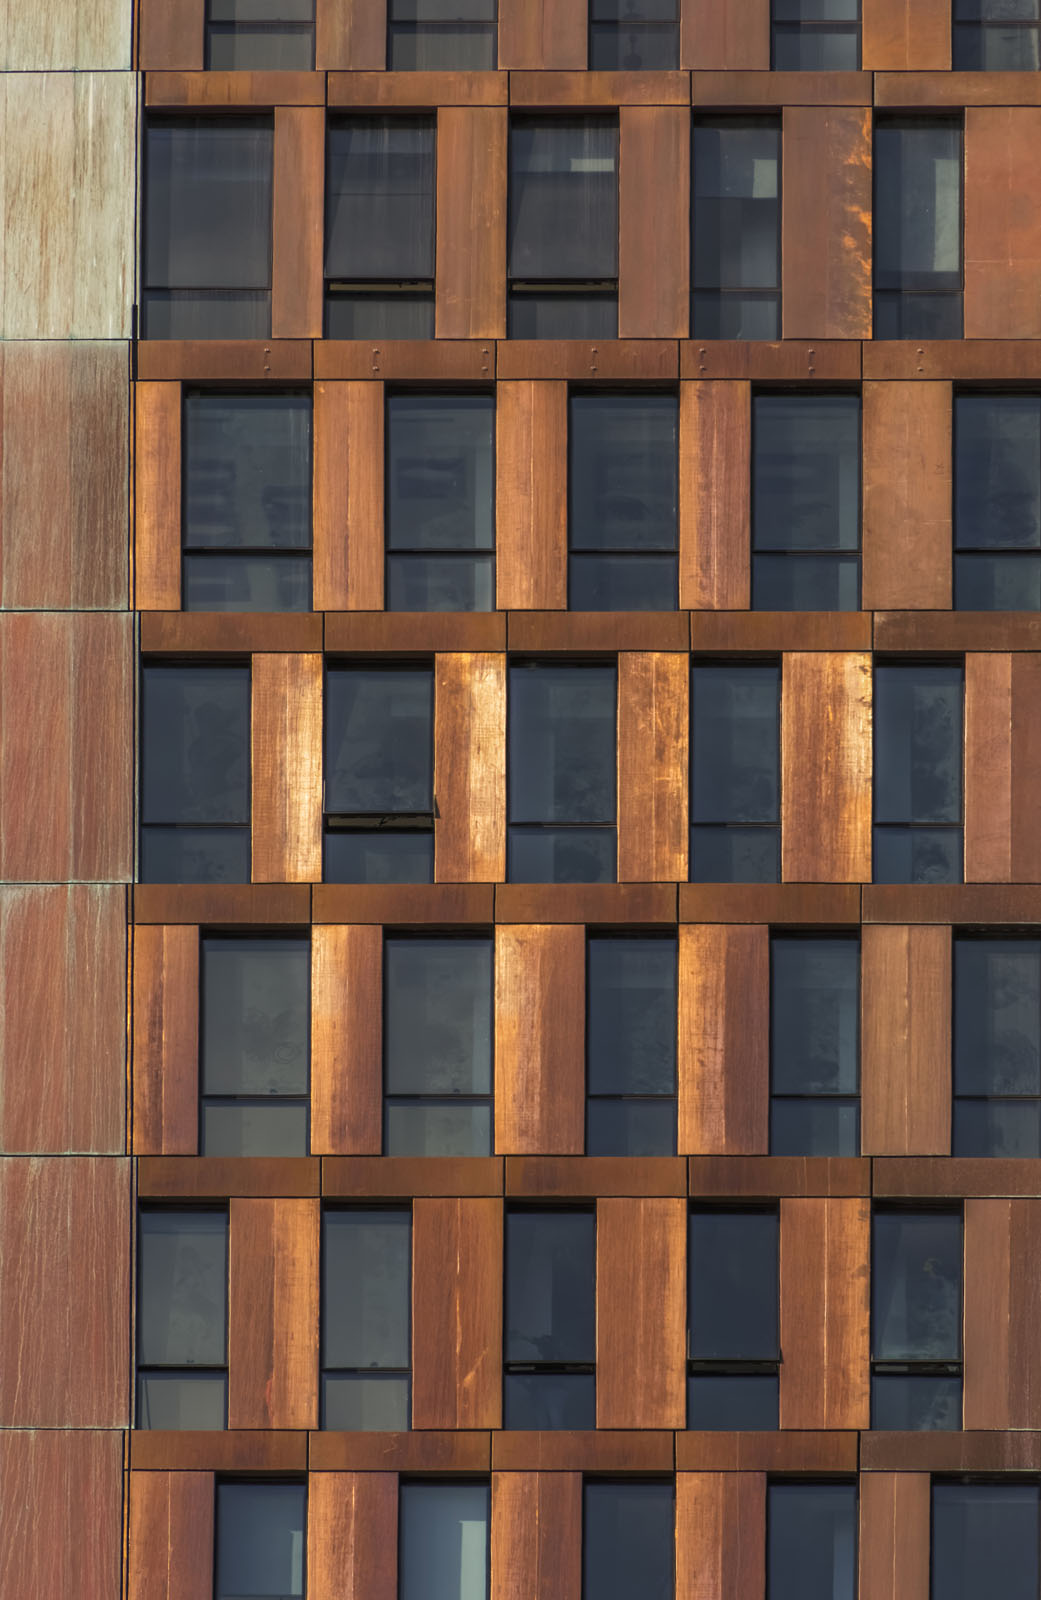 American Copper Buildings, Location: New York, New York, Architect: SHoP